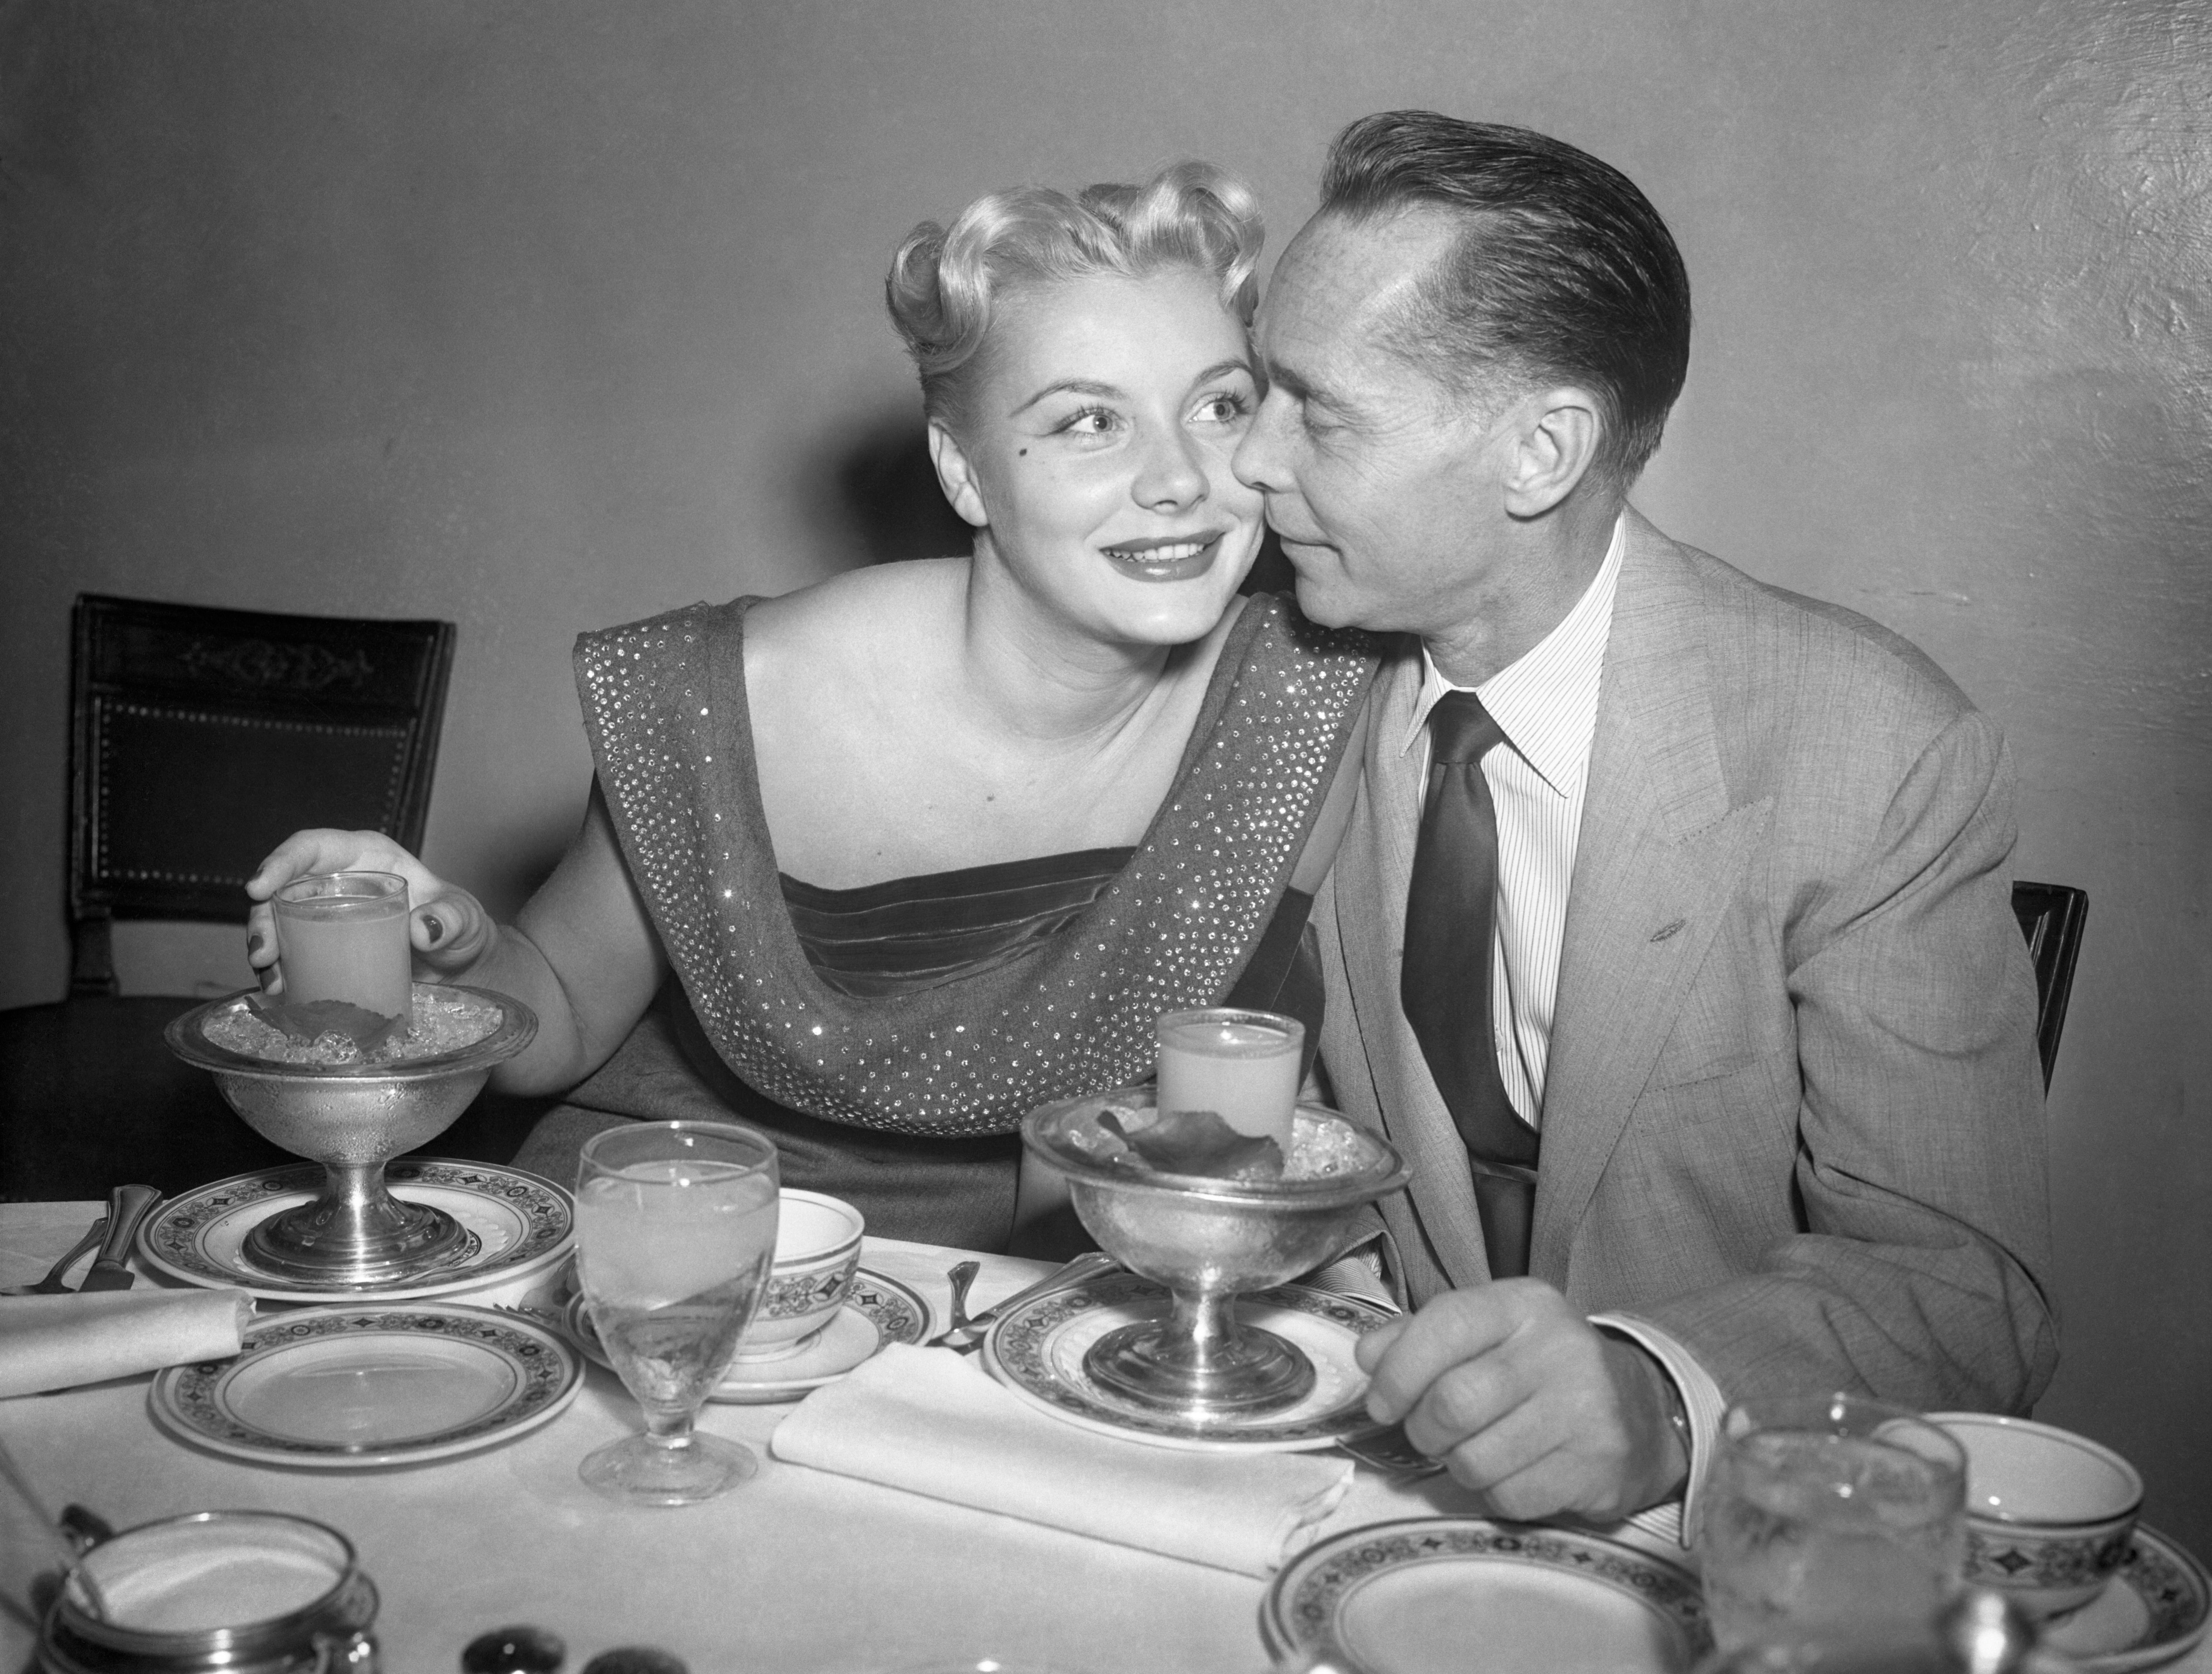 Barbara Payton and Franchot Tone at dinner together in LA, late 1951. | Photo: Getty Images